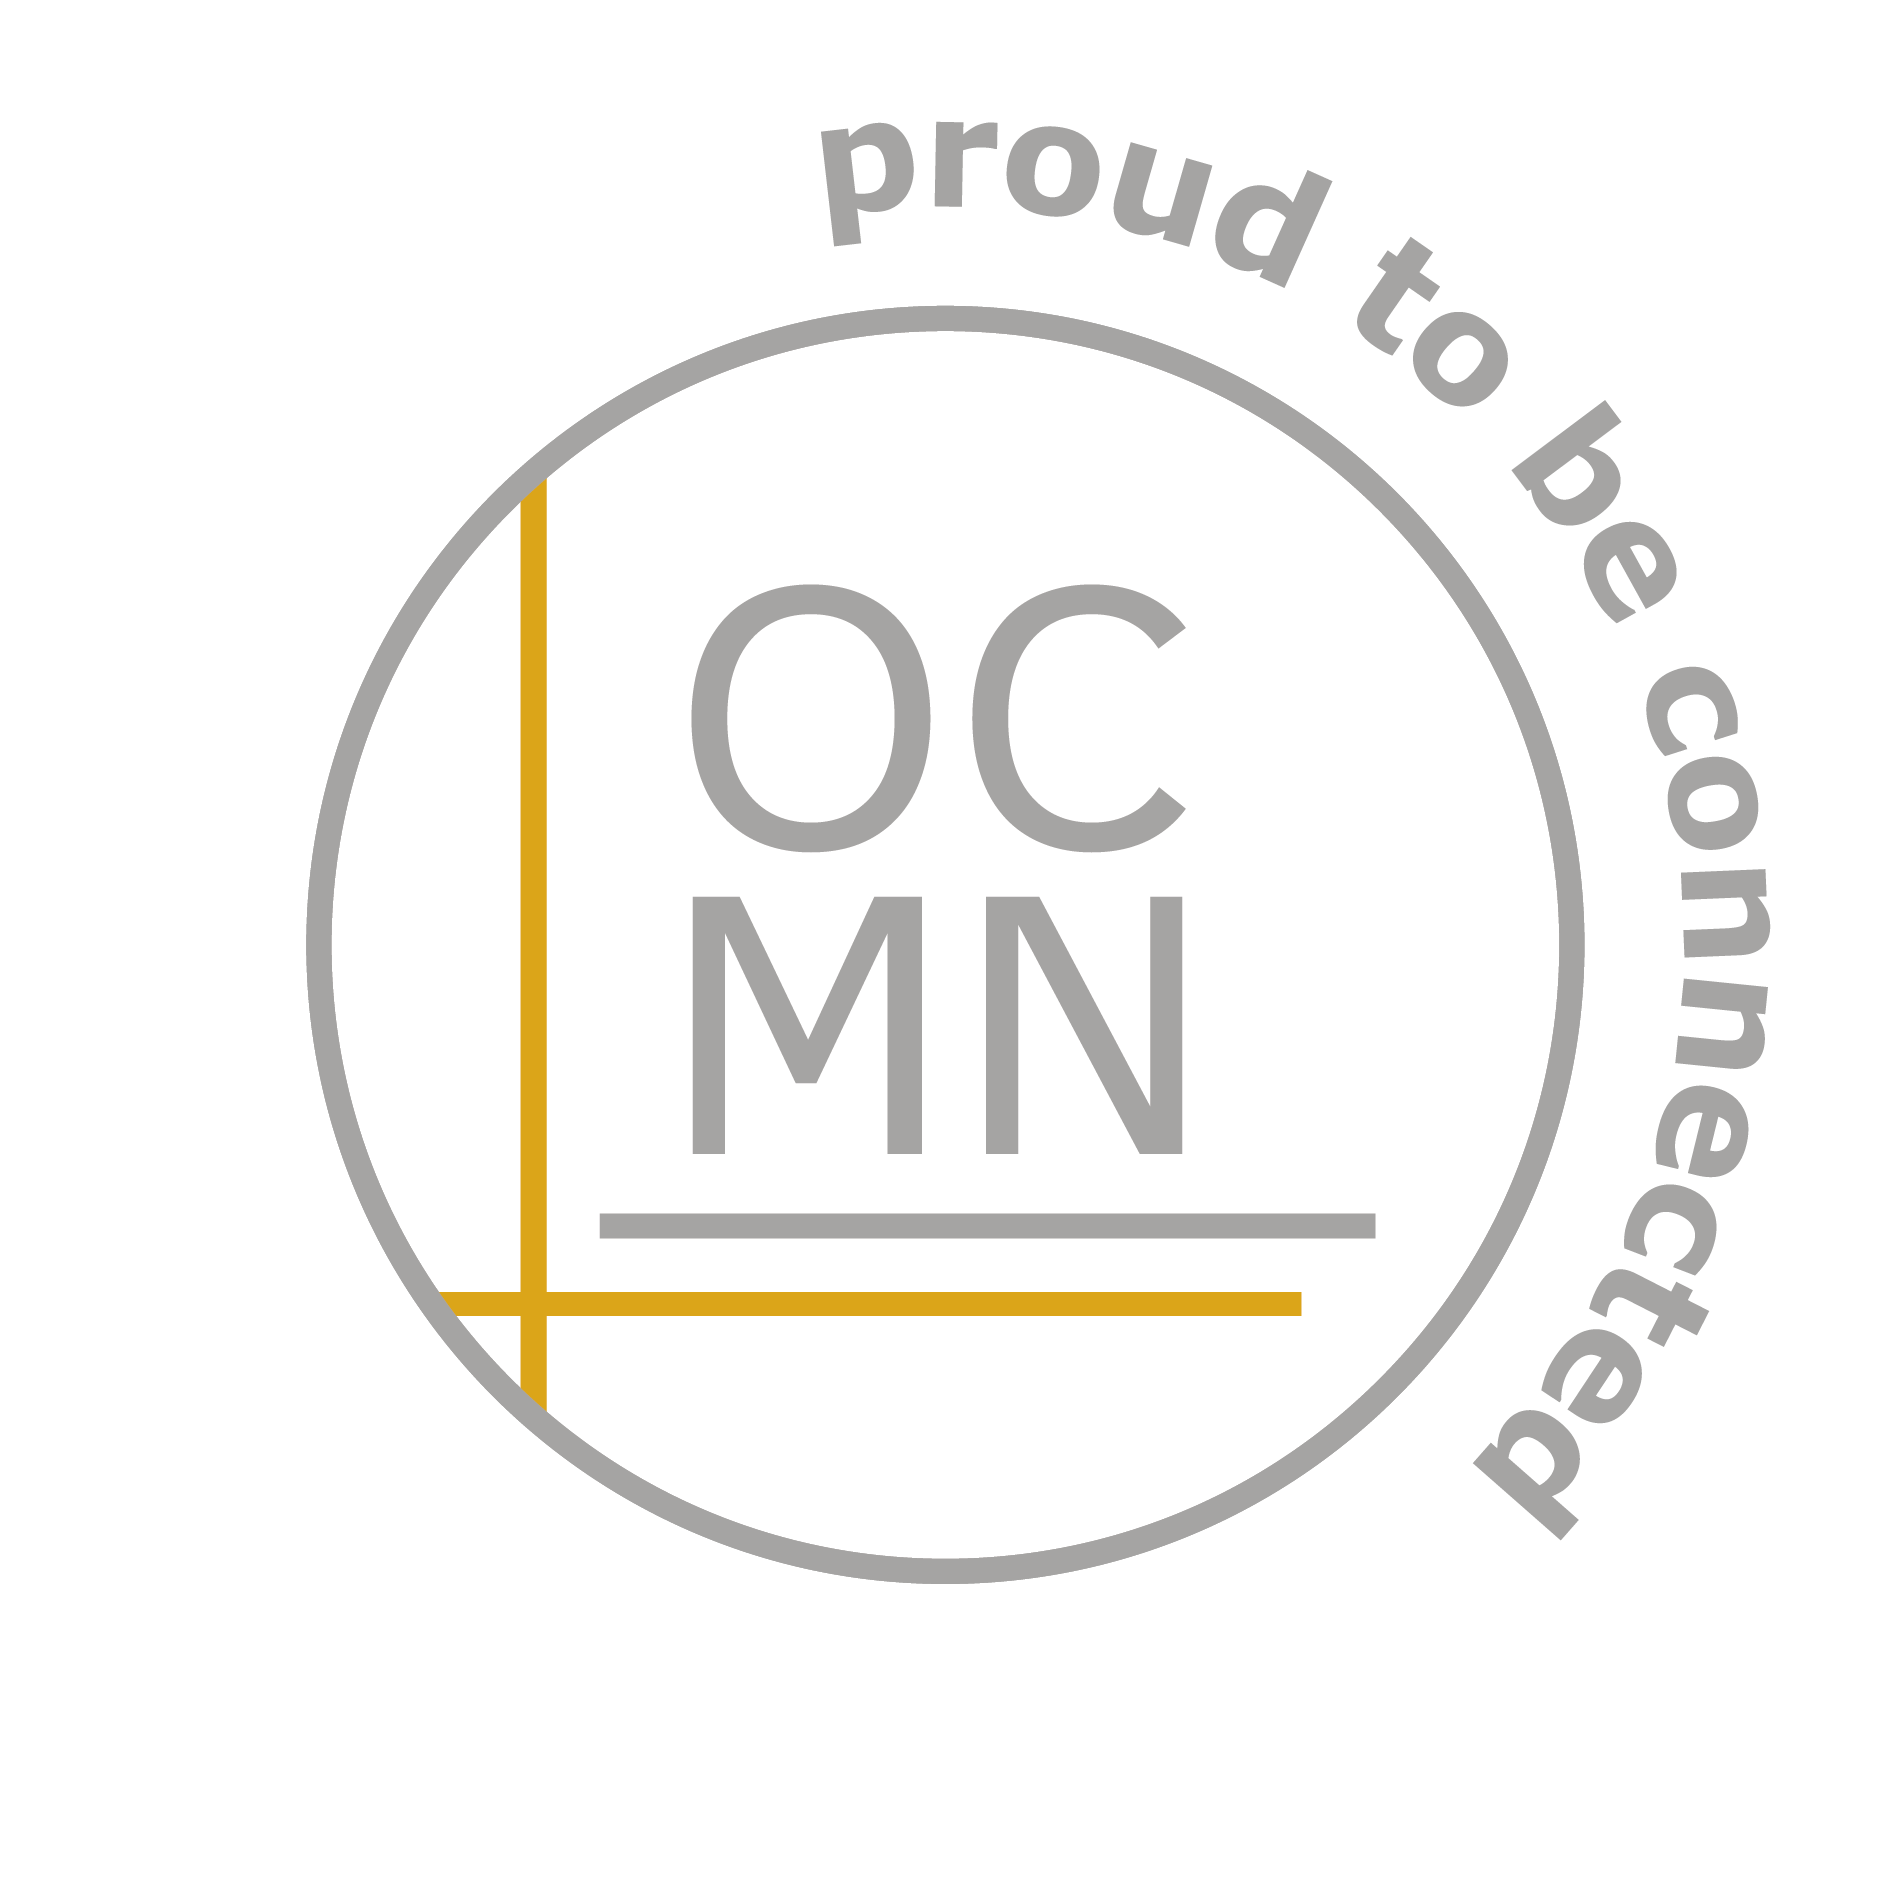 proud to be connected to ocmn (Ondernemers Conferenties Midden-Nederland